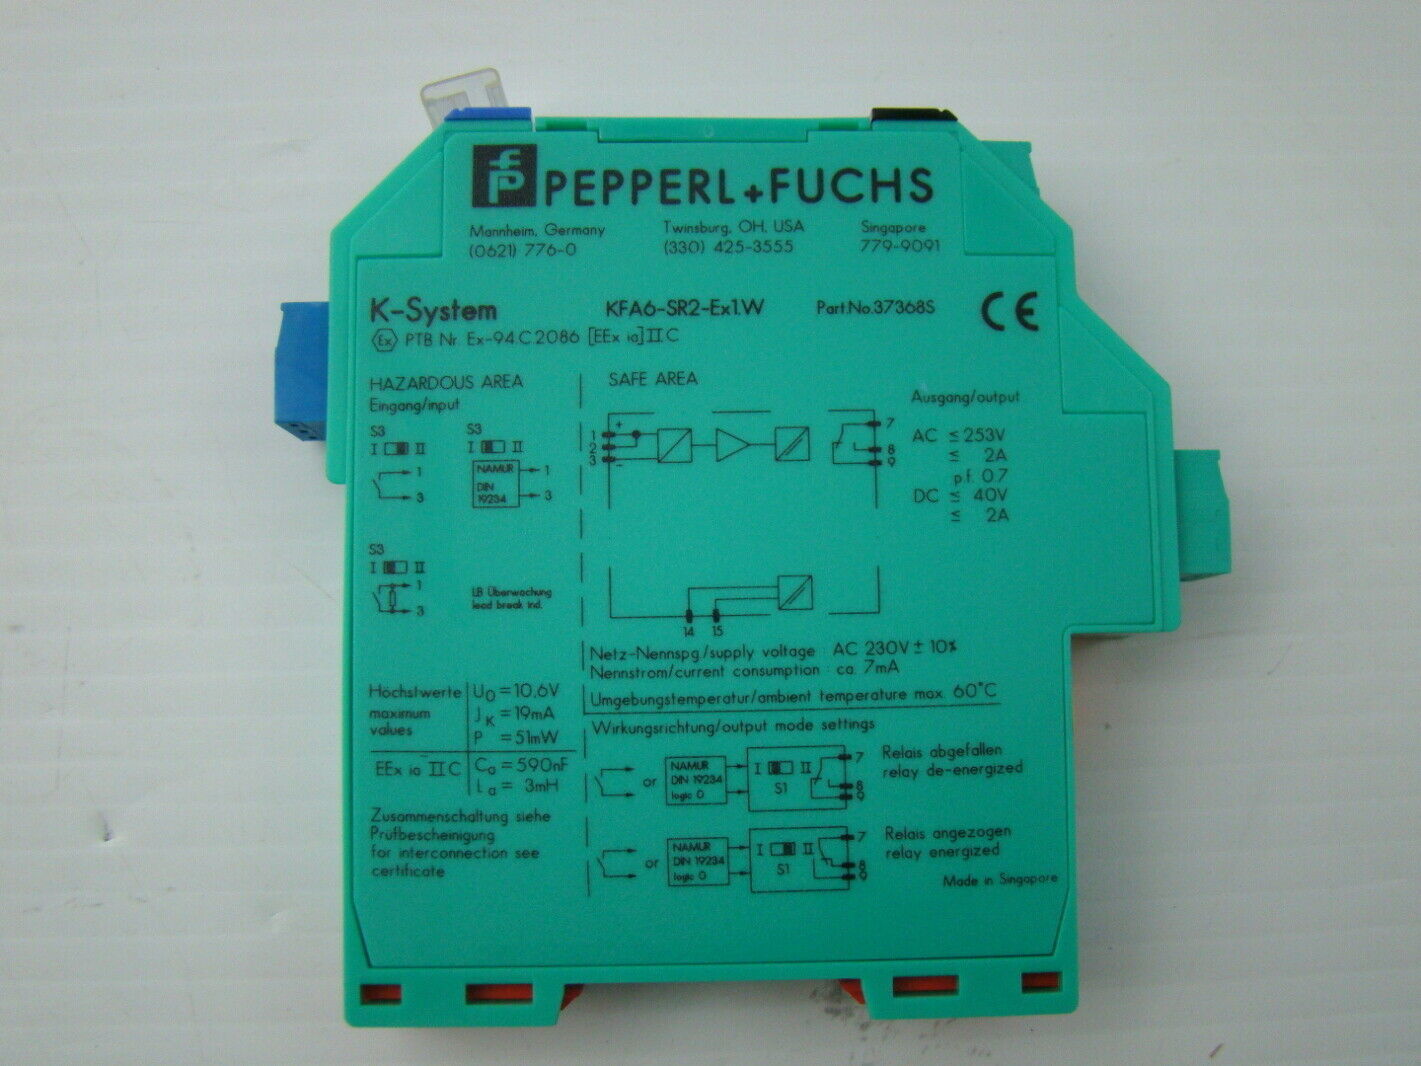 jf07188 pepperl fuchs isolated switch amplifier kfa6 sr2 ex1w pepperl fuchs isolated switch amplifier kfa6 sr2 ex1 w ebay kfd2-sr2-ex1.w wiring diagram at love-stories.co